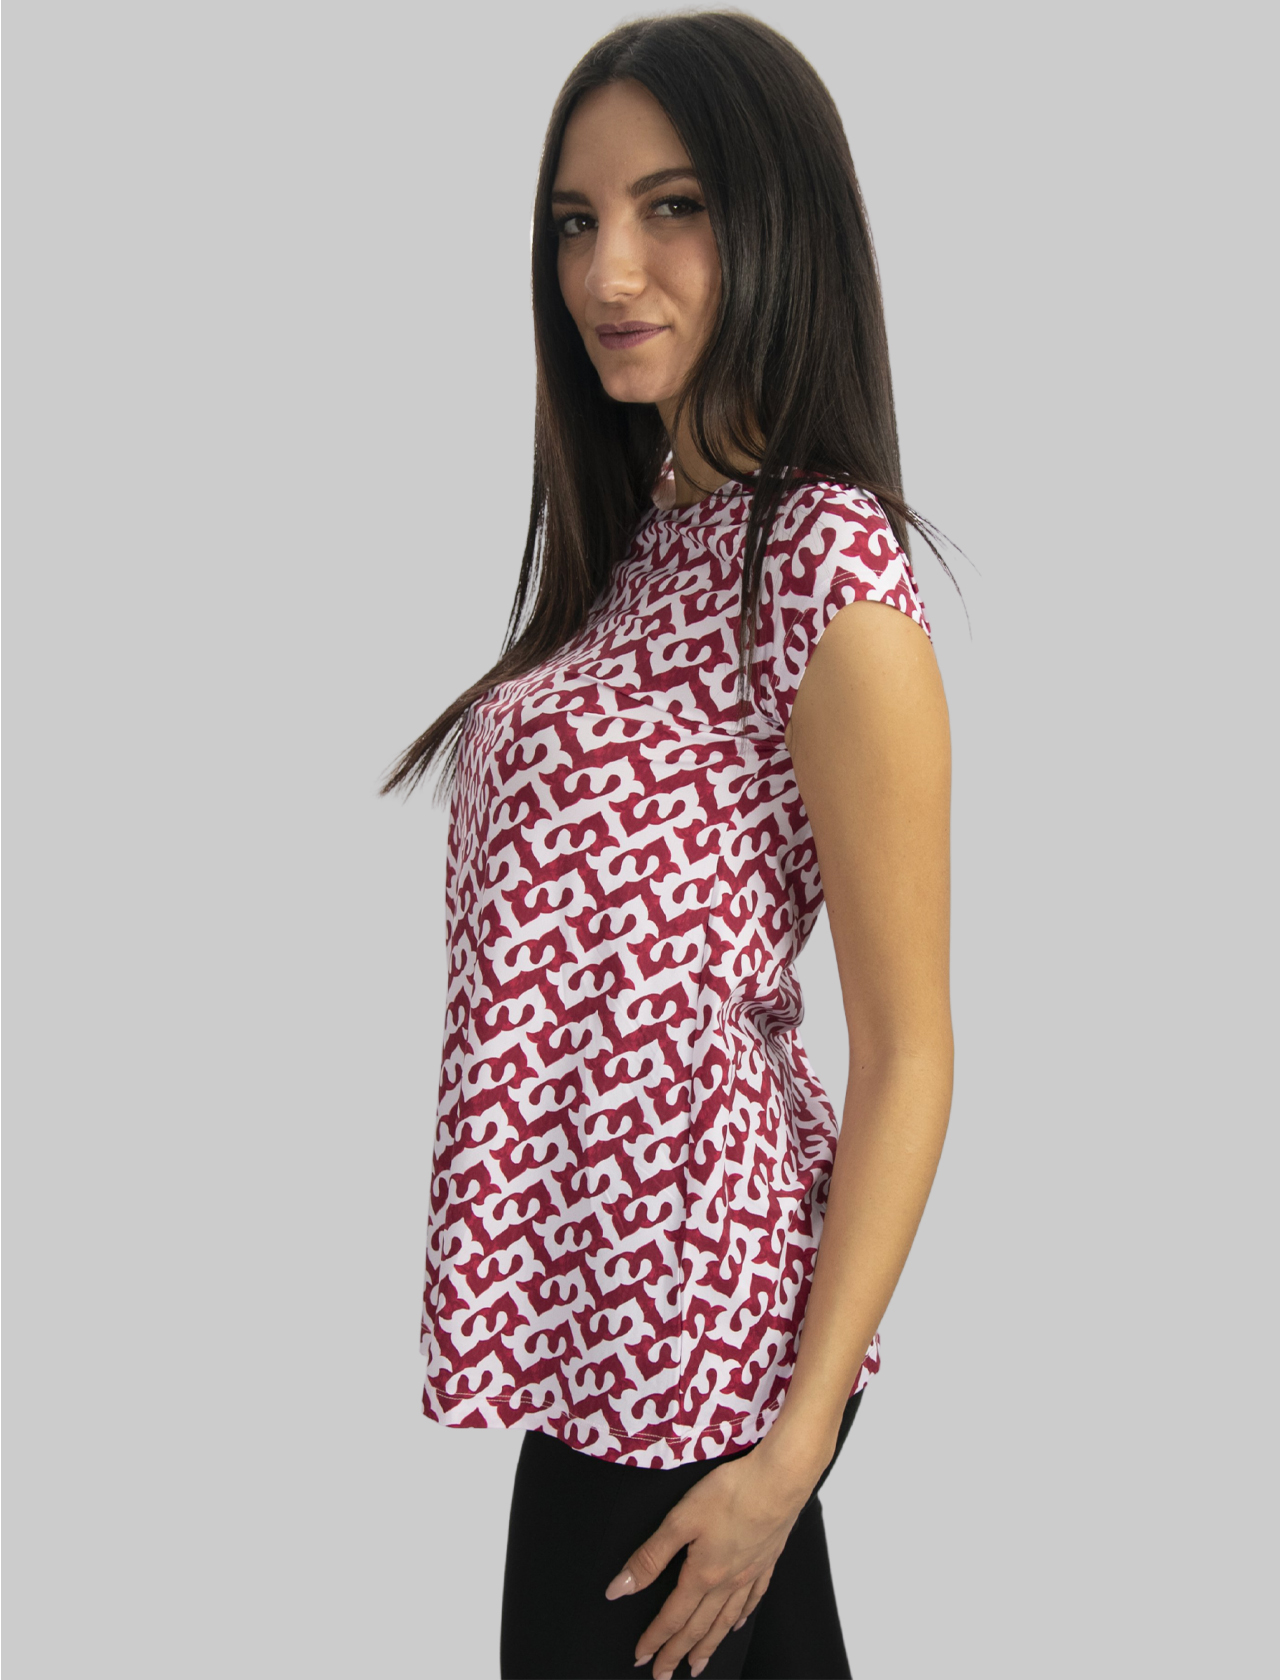 Women's Clothing Ceres Drop Jersey T-shirt with Red and Pink Boat Neck Maliparmi |  | JK020270498A3092